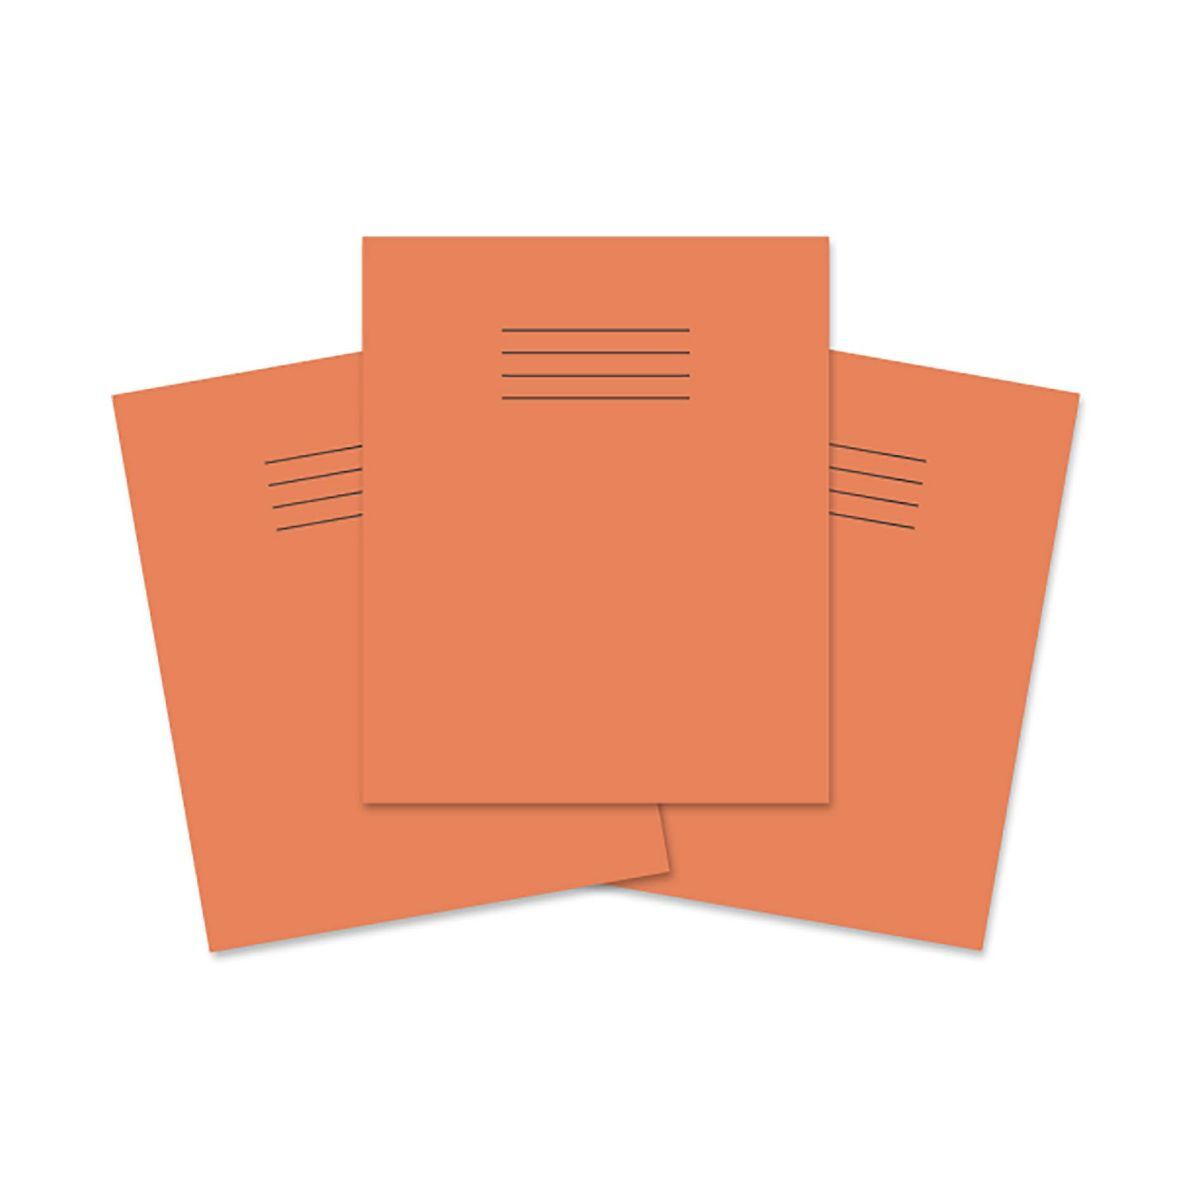 Rhino Exercise Book 8 inch x 6.5 Inch 48 Pages 8mm Ruled Pack of 100 Orange